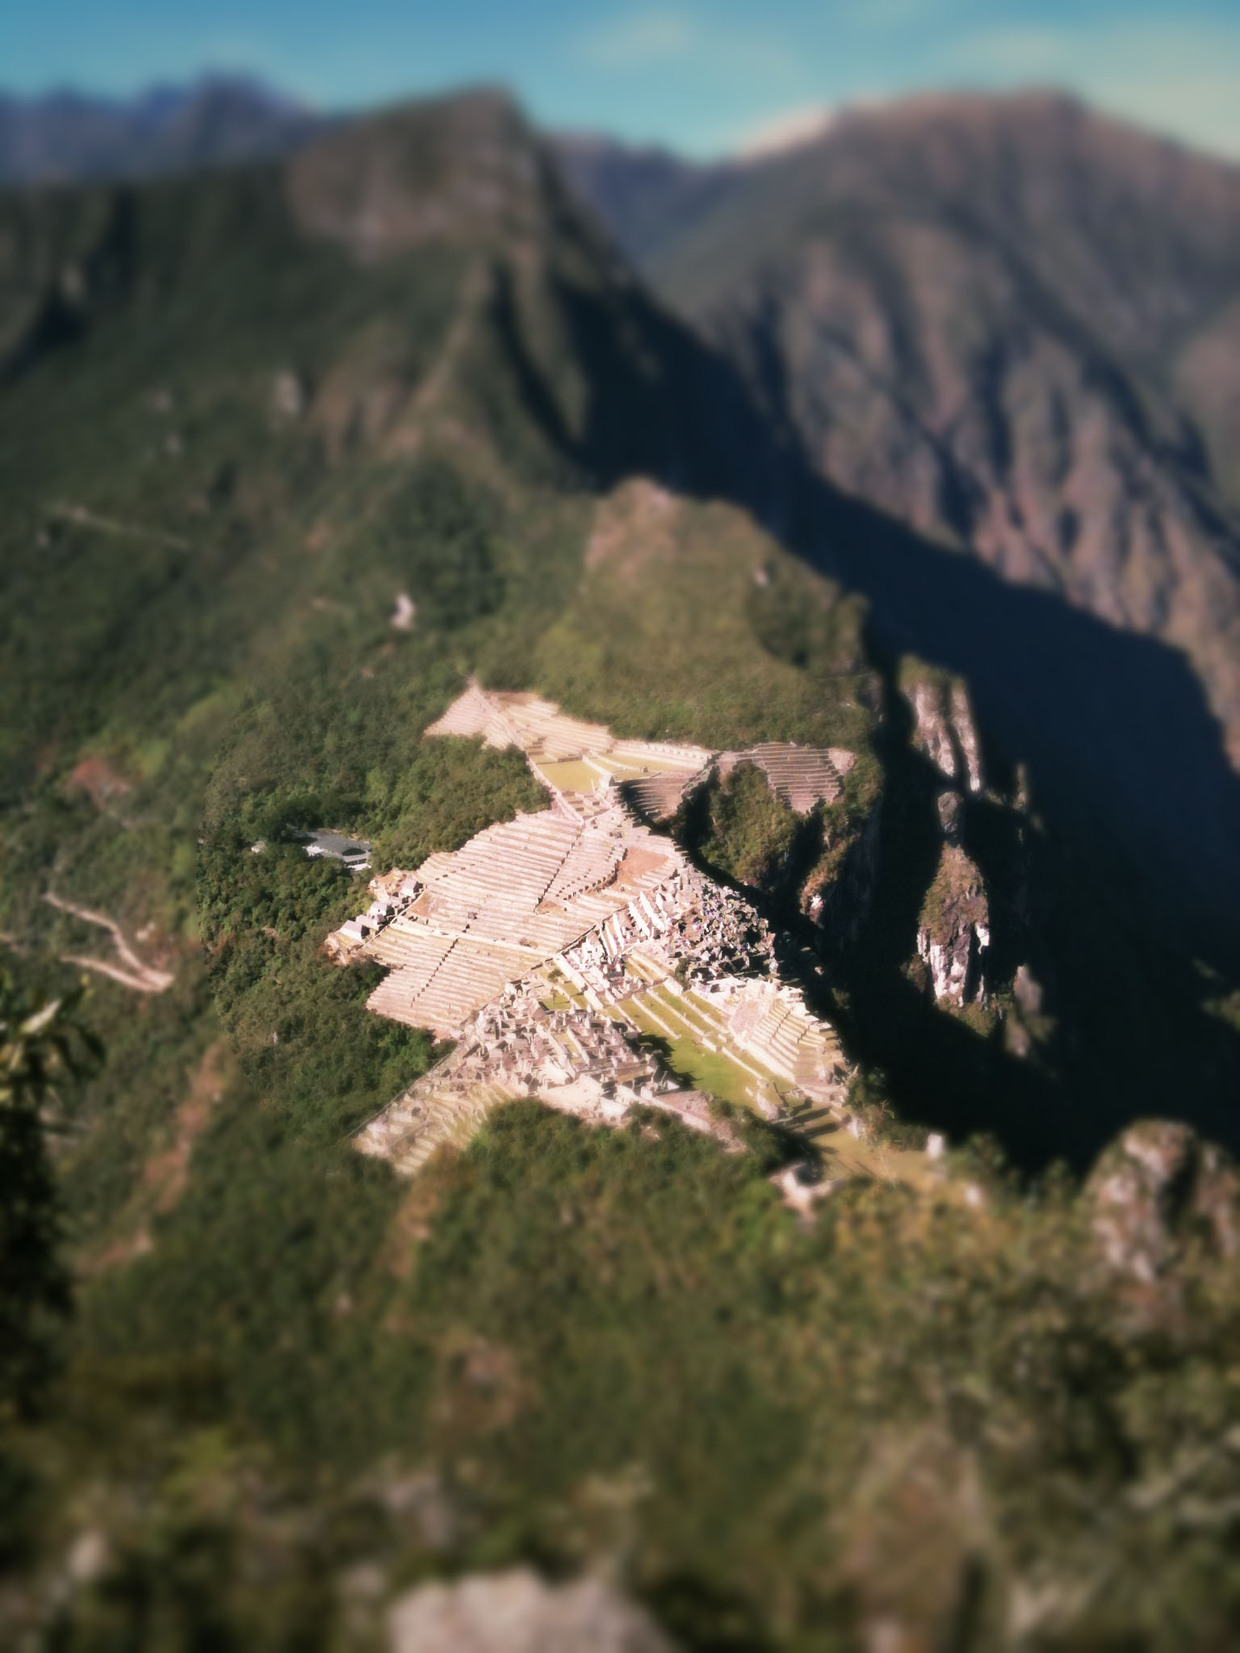 hd b577ed416292b205feabb605184309a81 40 Wonderful Examples of Tilt Shift Photography